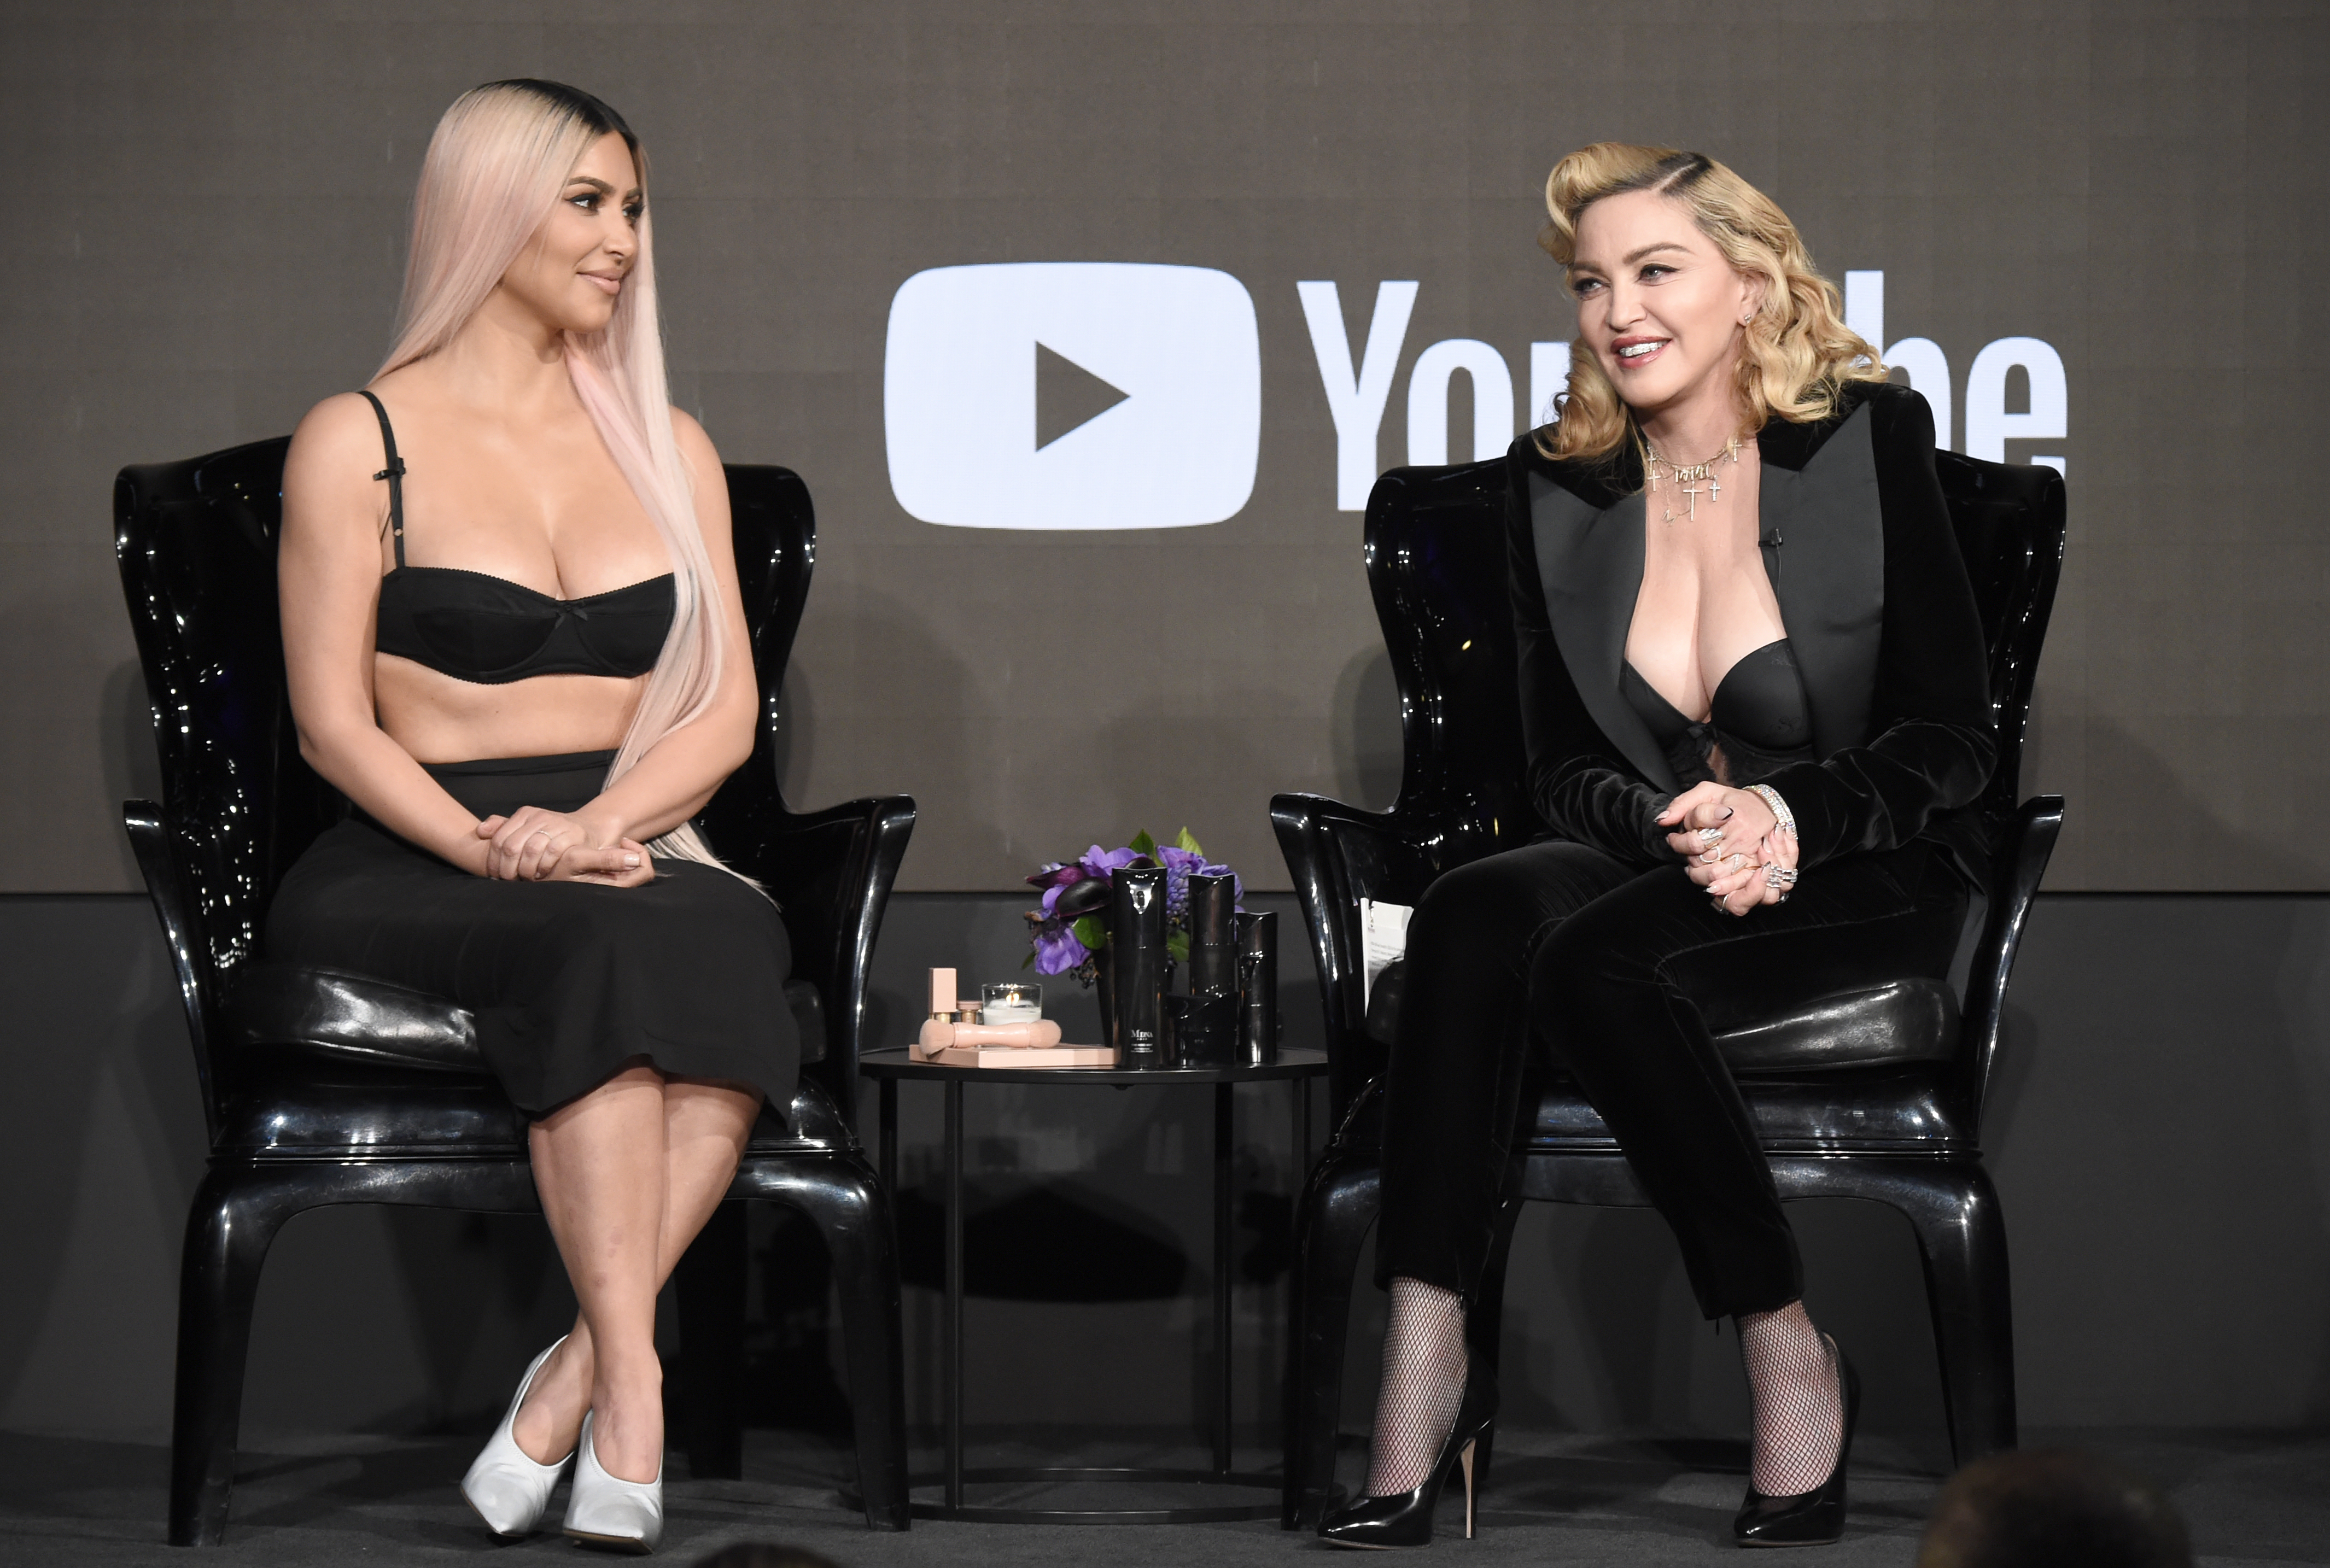 Madonna-Kim-Kardashian-West-Swap-Beauty-Tricks-Masks-Botox-Dos-and-Donts-More